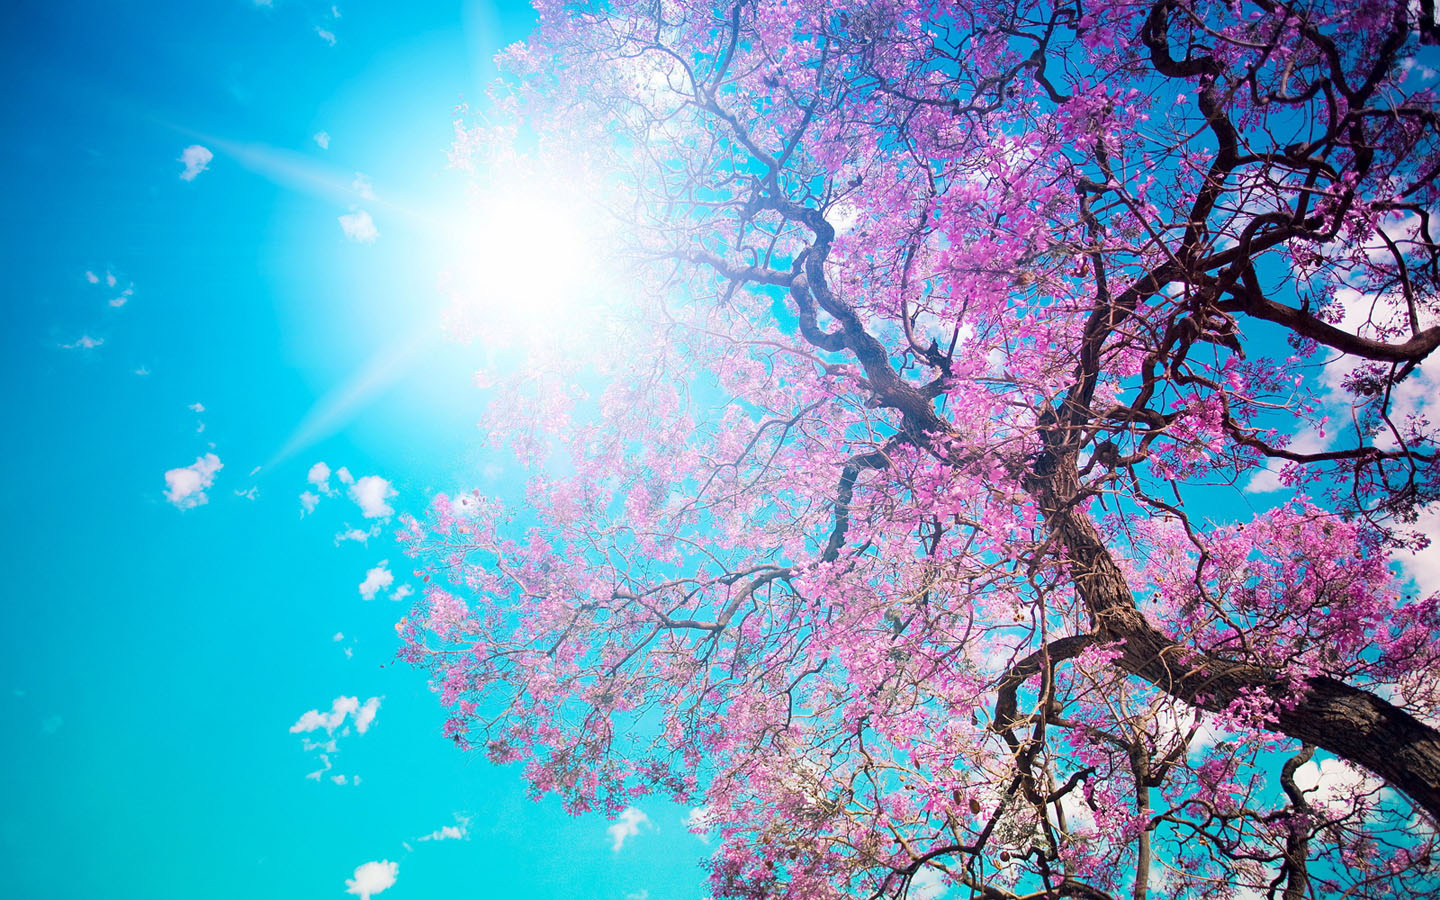 Download Cherry Blossom Wallpaper pictures in high definition or 1440x900